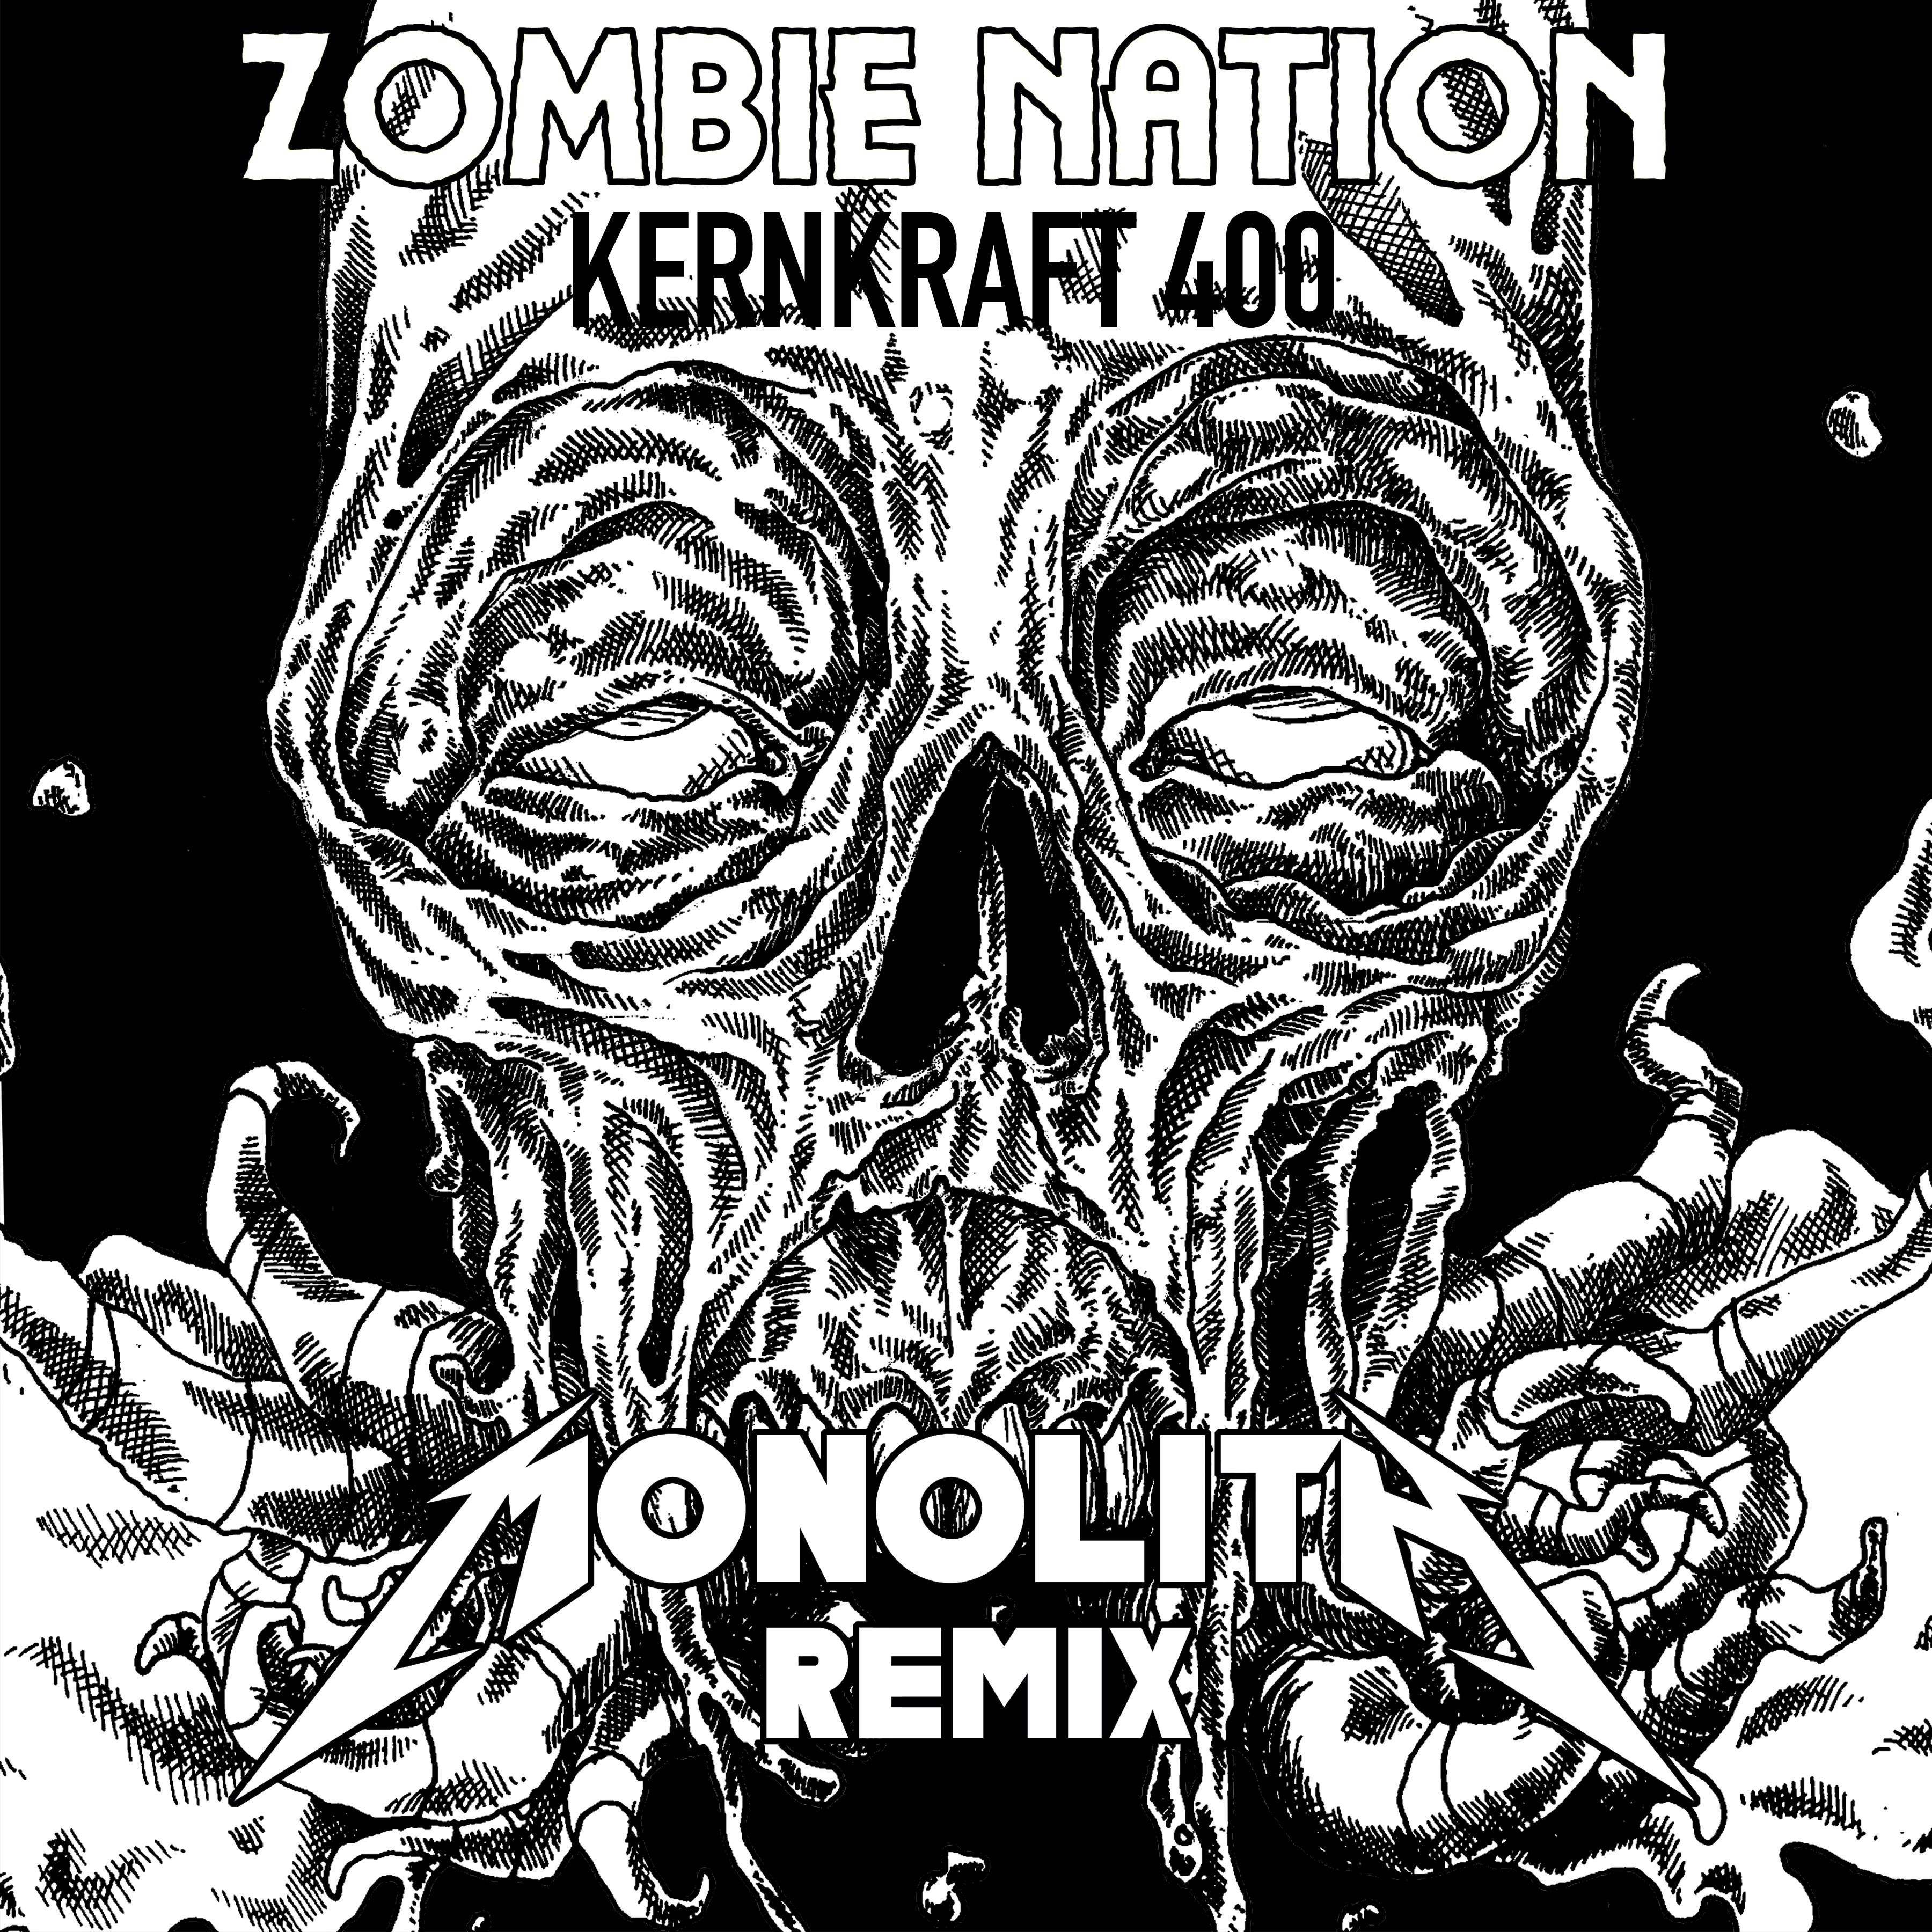 Zombie Nation - Kernkraft 400 (Monolith Remix)